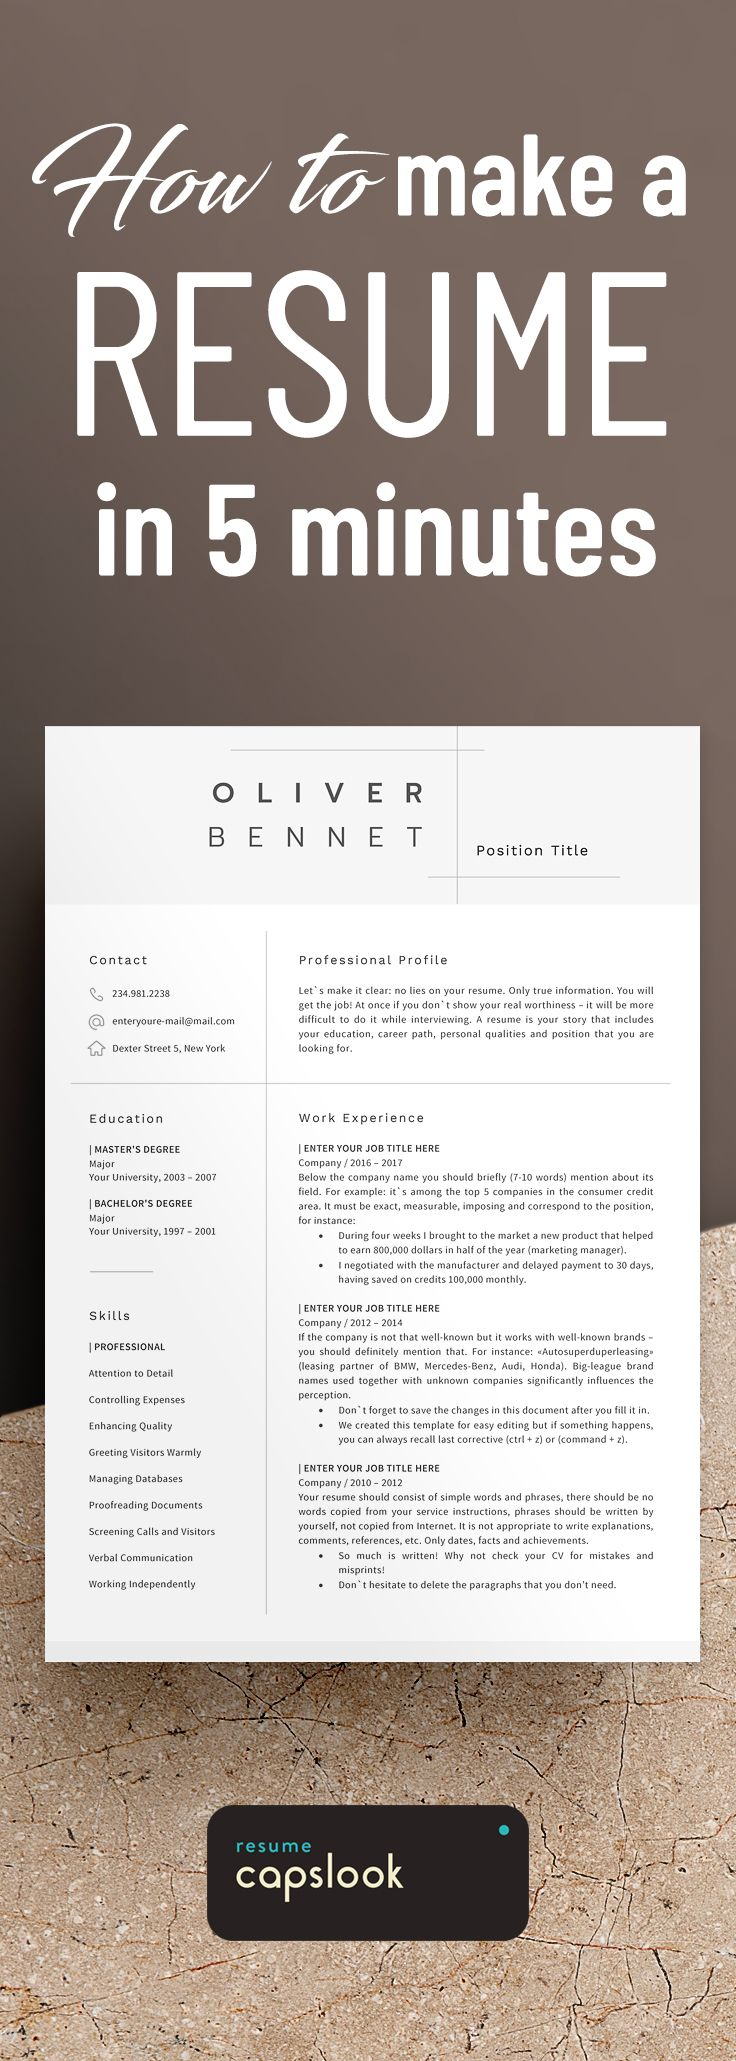 Professional resume template for legal paralegal lawyer